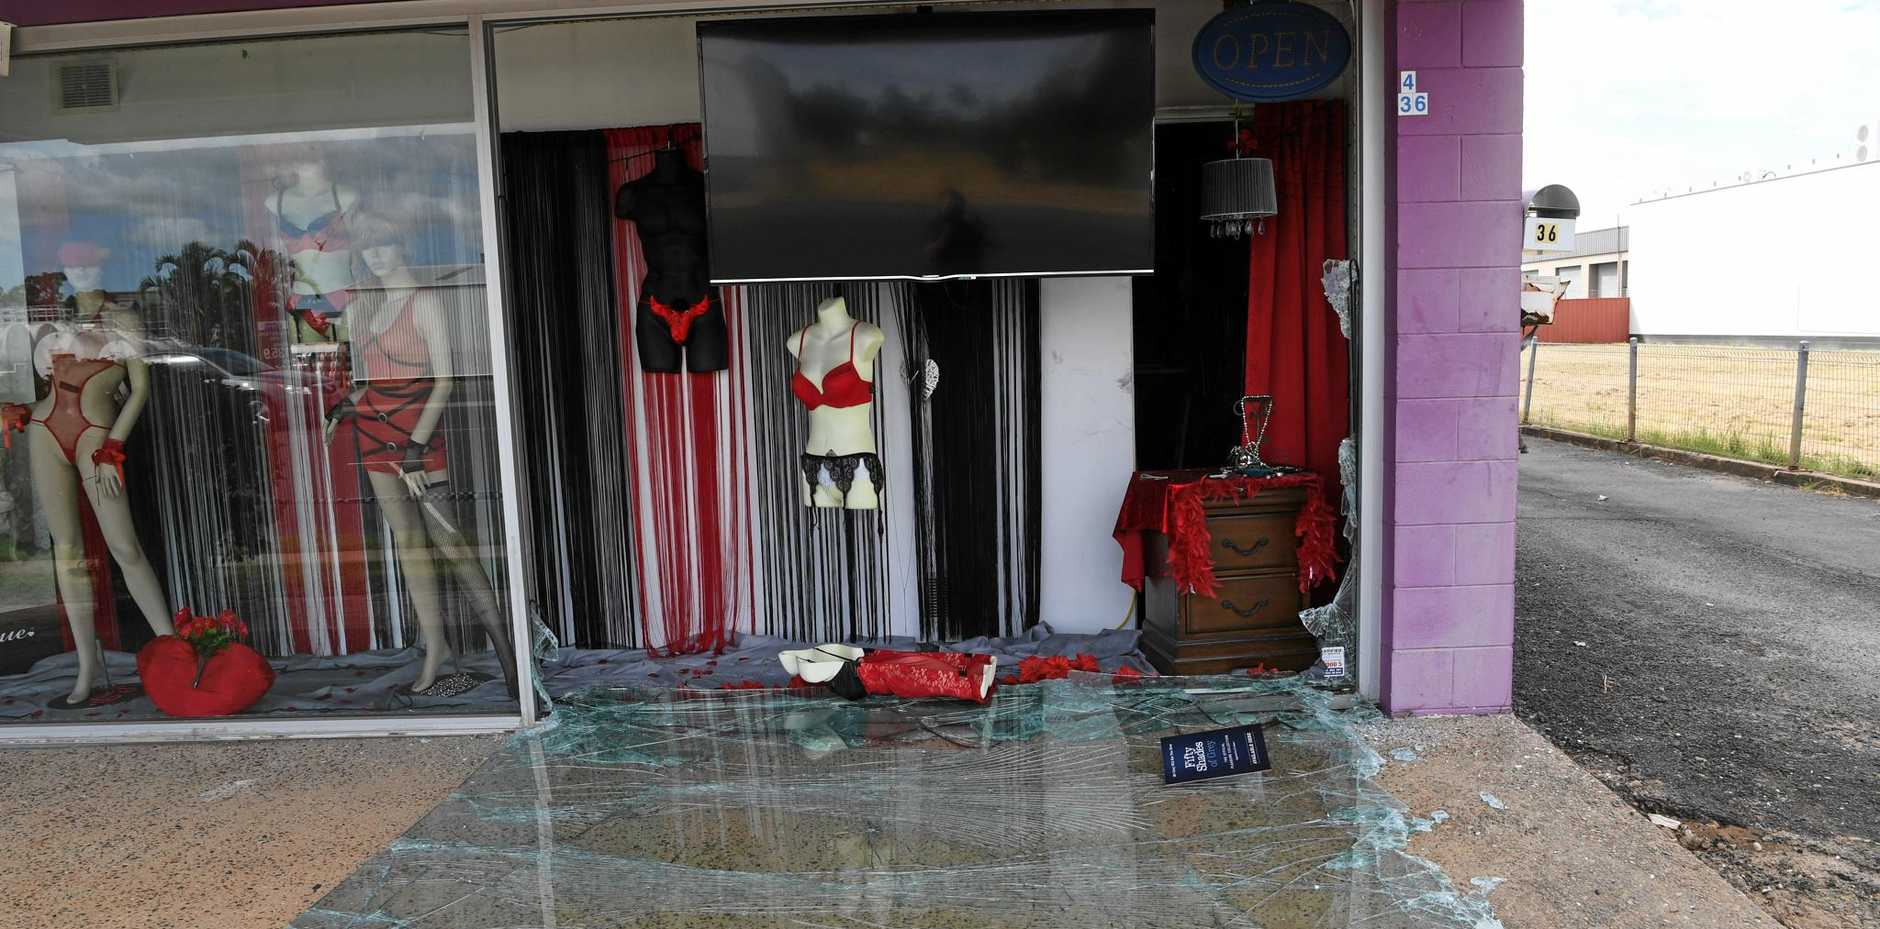 Bundaberg Police think the Totally Adult sex shop in Princess St Bundaberg East may have been targetted by arsonists.